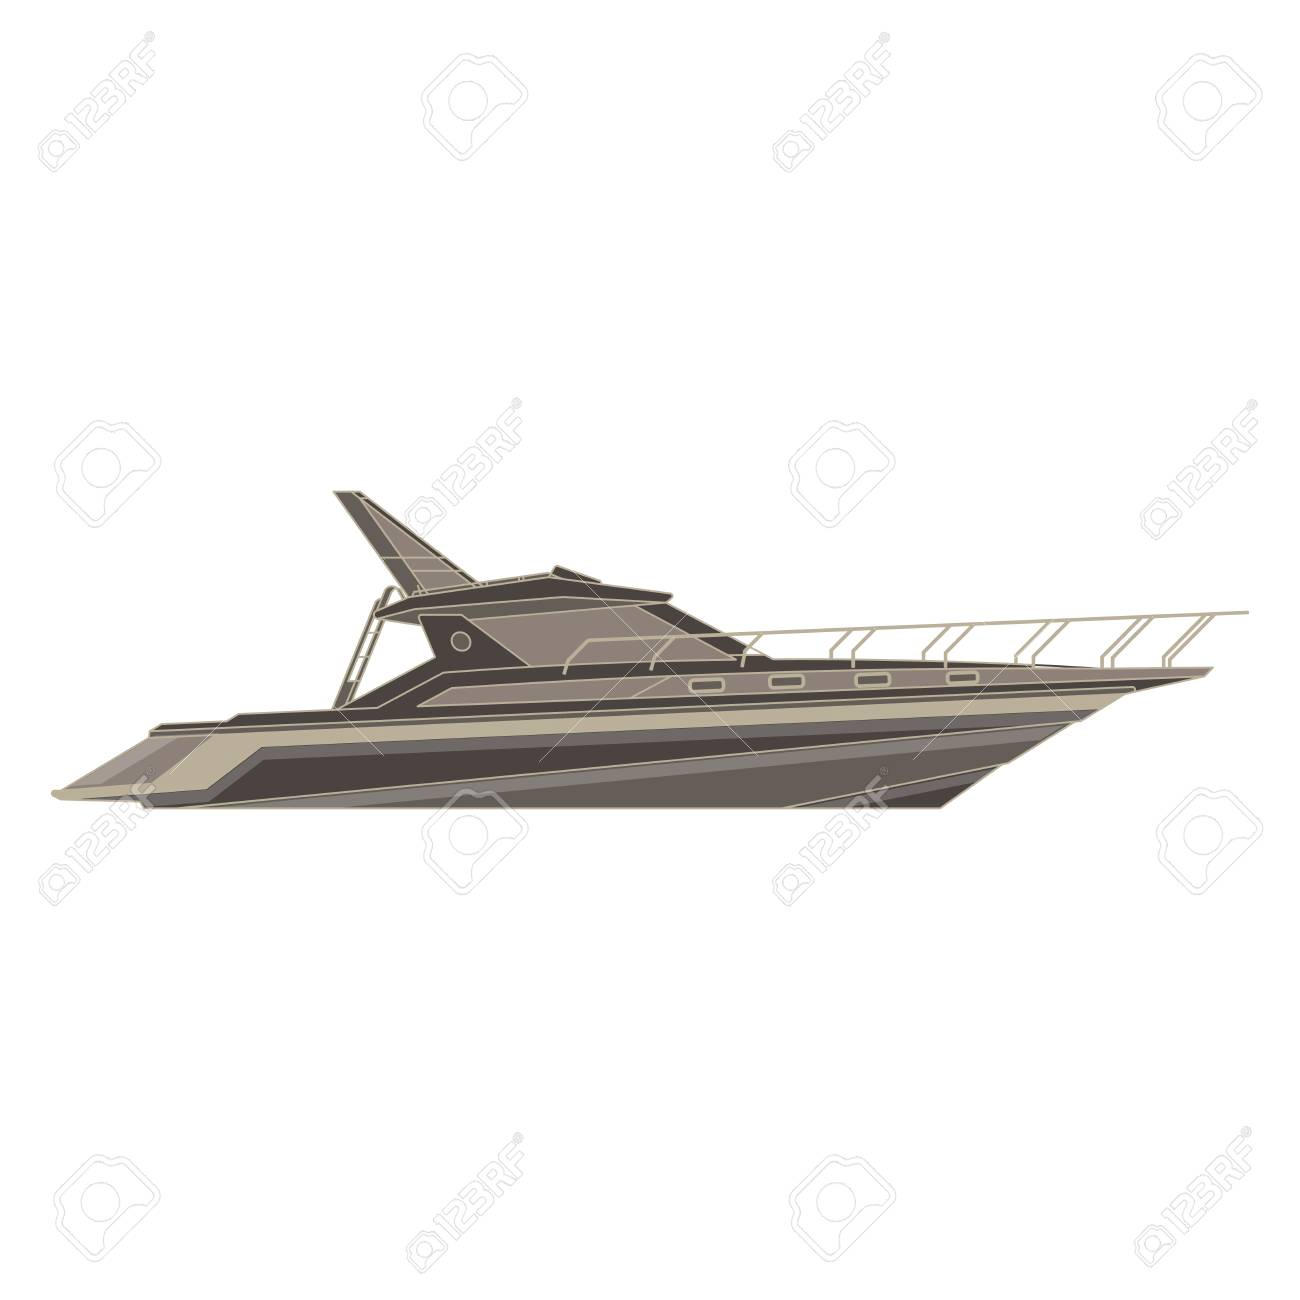 Vector Yacht Flat Icon Isolated Boat Side View Cruise Ship Design